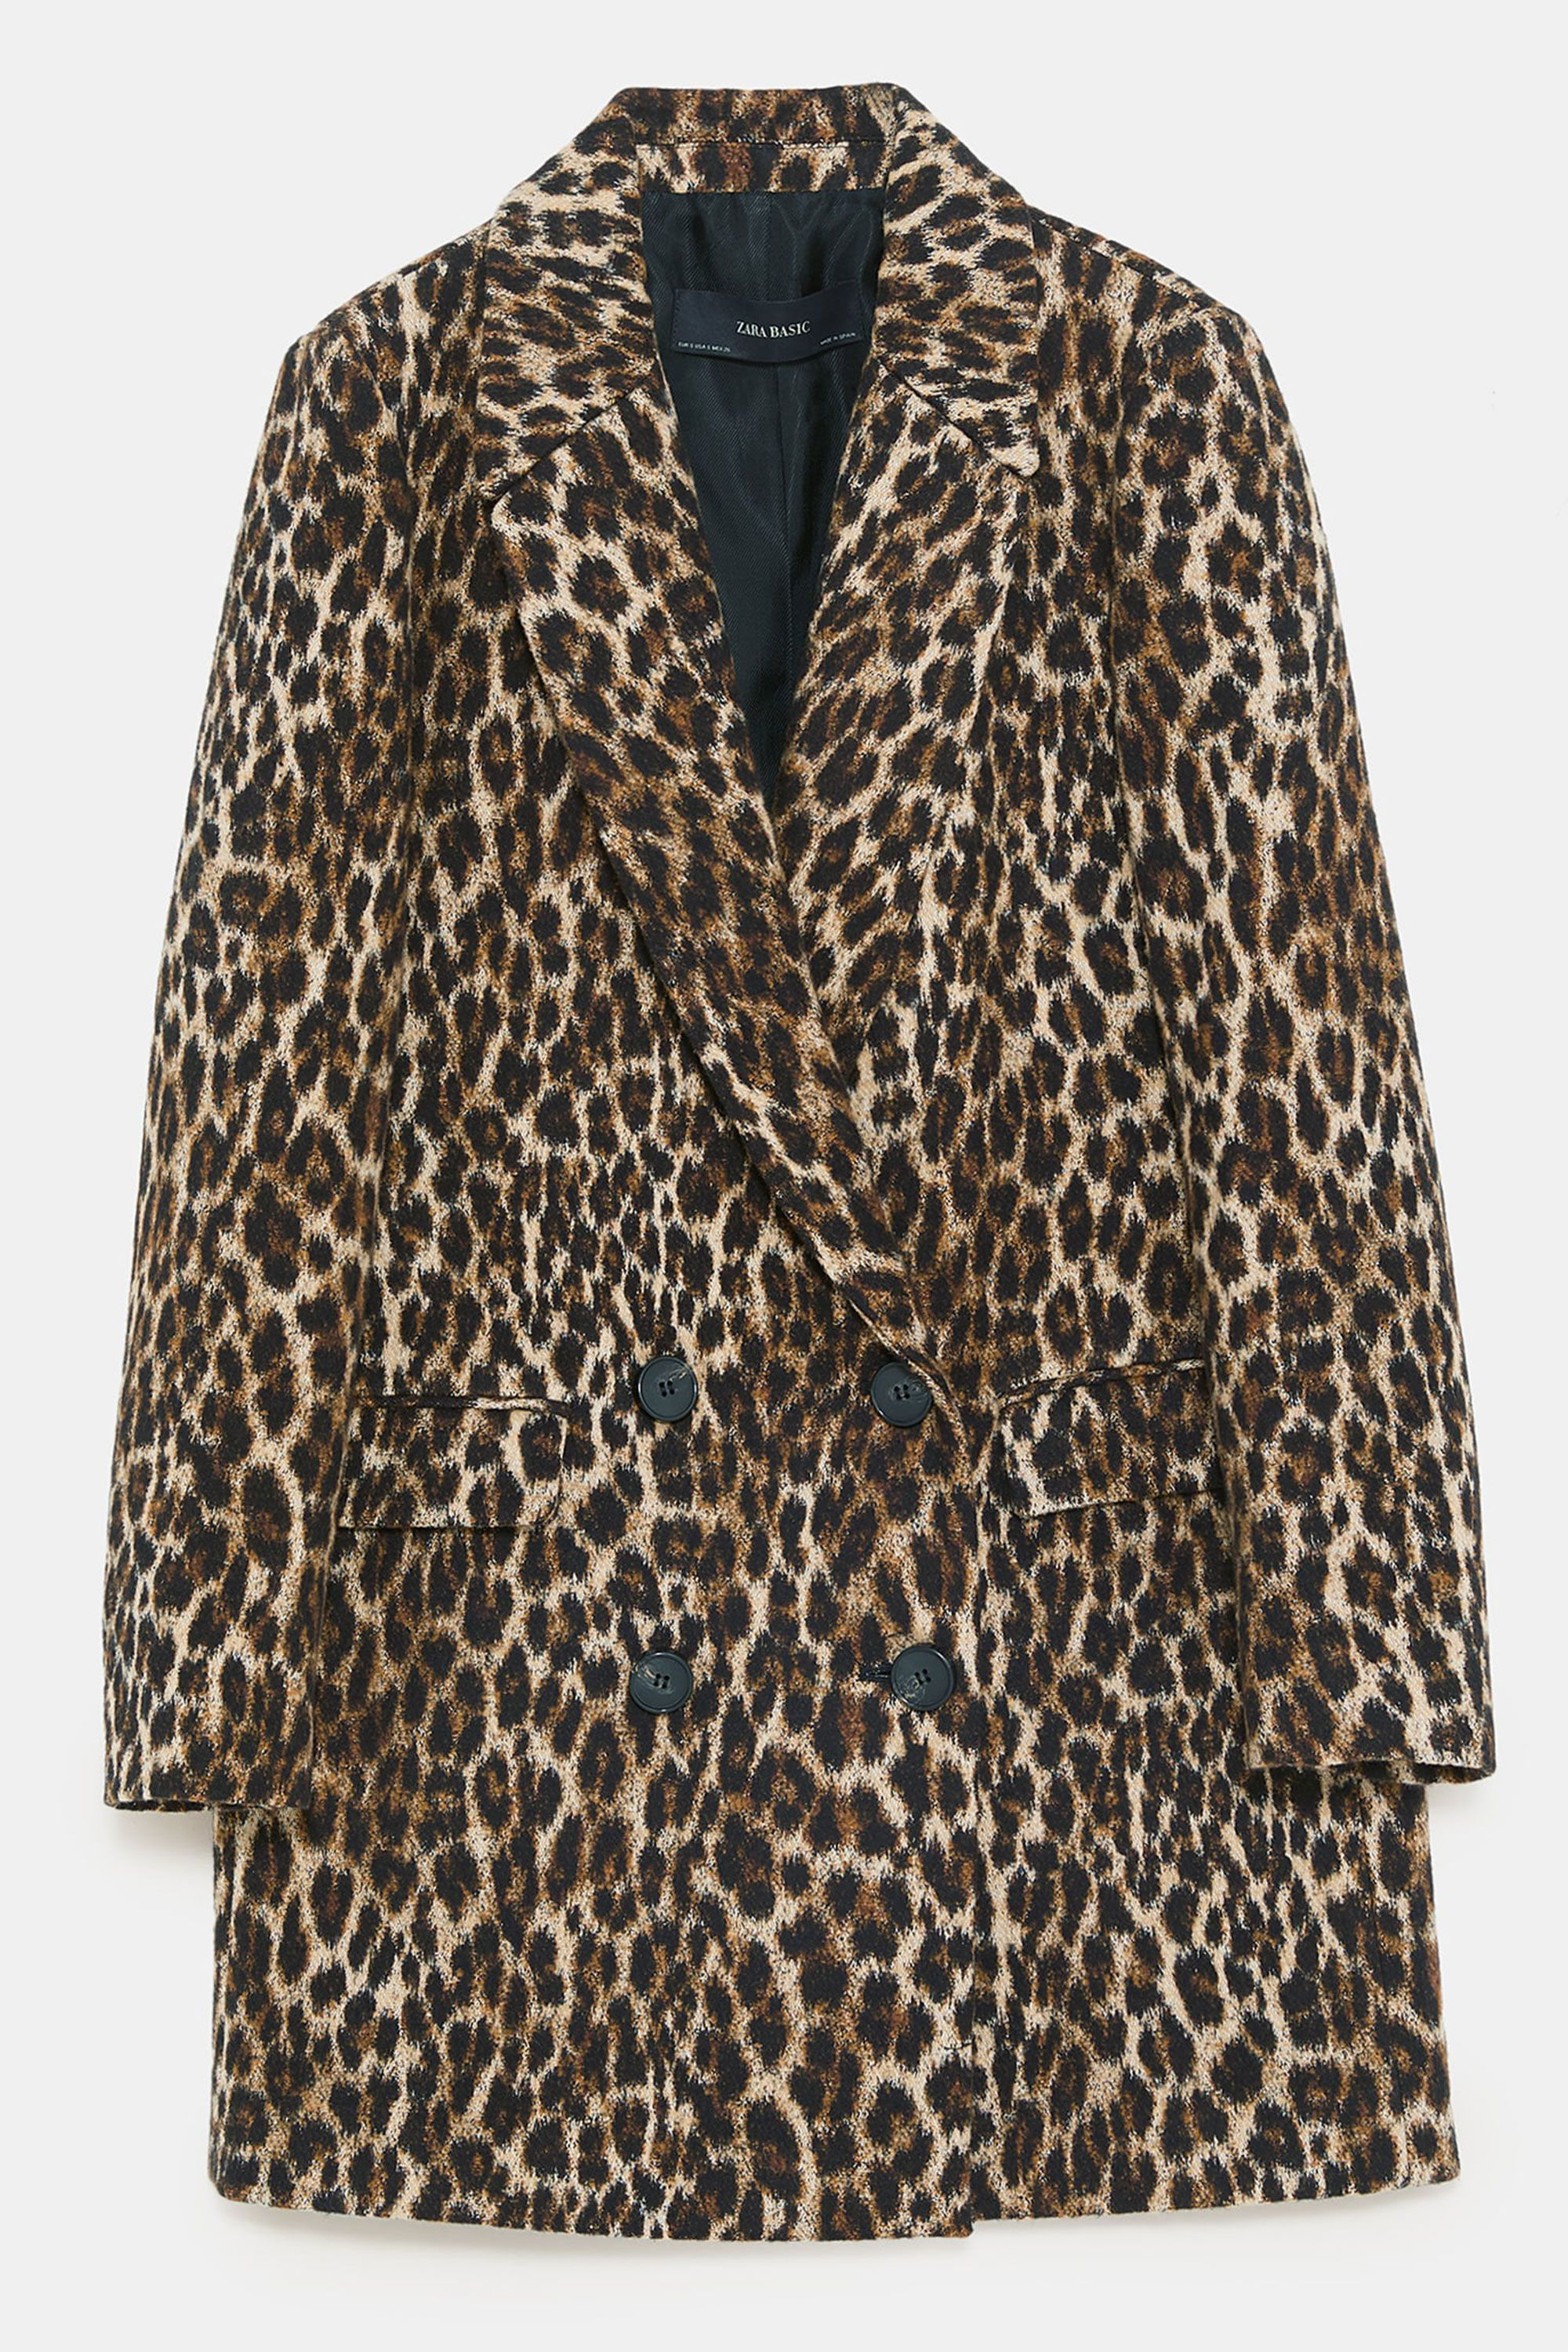 5e8e793ad13a The best leopard-print coats to buy this winter – Leopard coats to wear  autumn winter 2018